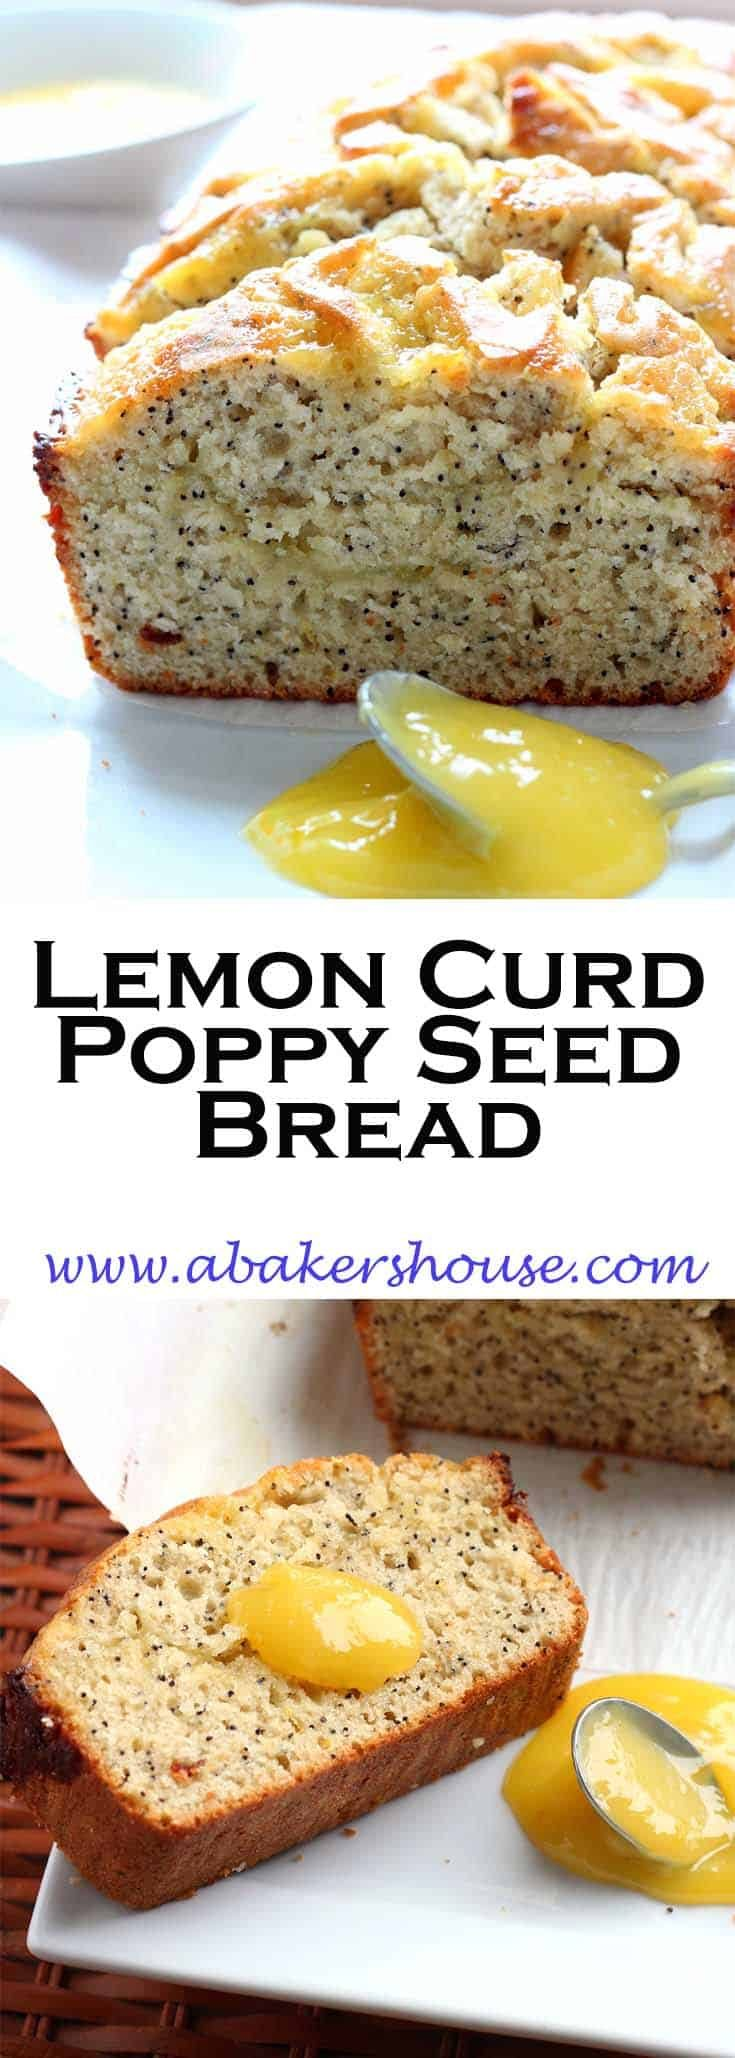 This Poppy Seed Bread from a Williams Sonoma recipe  is elevated by a triple dose of lemon-- lemon juice, lemon zest and lemon curd. It is bright and cheerful-- even while you are making it the smell of lemon will make you smile and think that winter is nearly over. #lemon #lemoncurd #poppy #abakershouse #quickbread